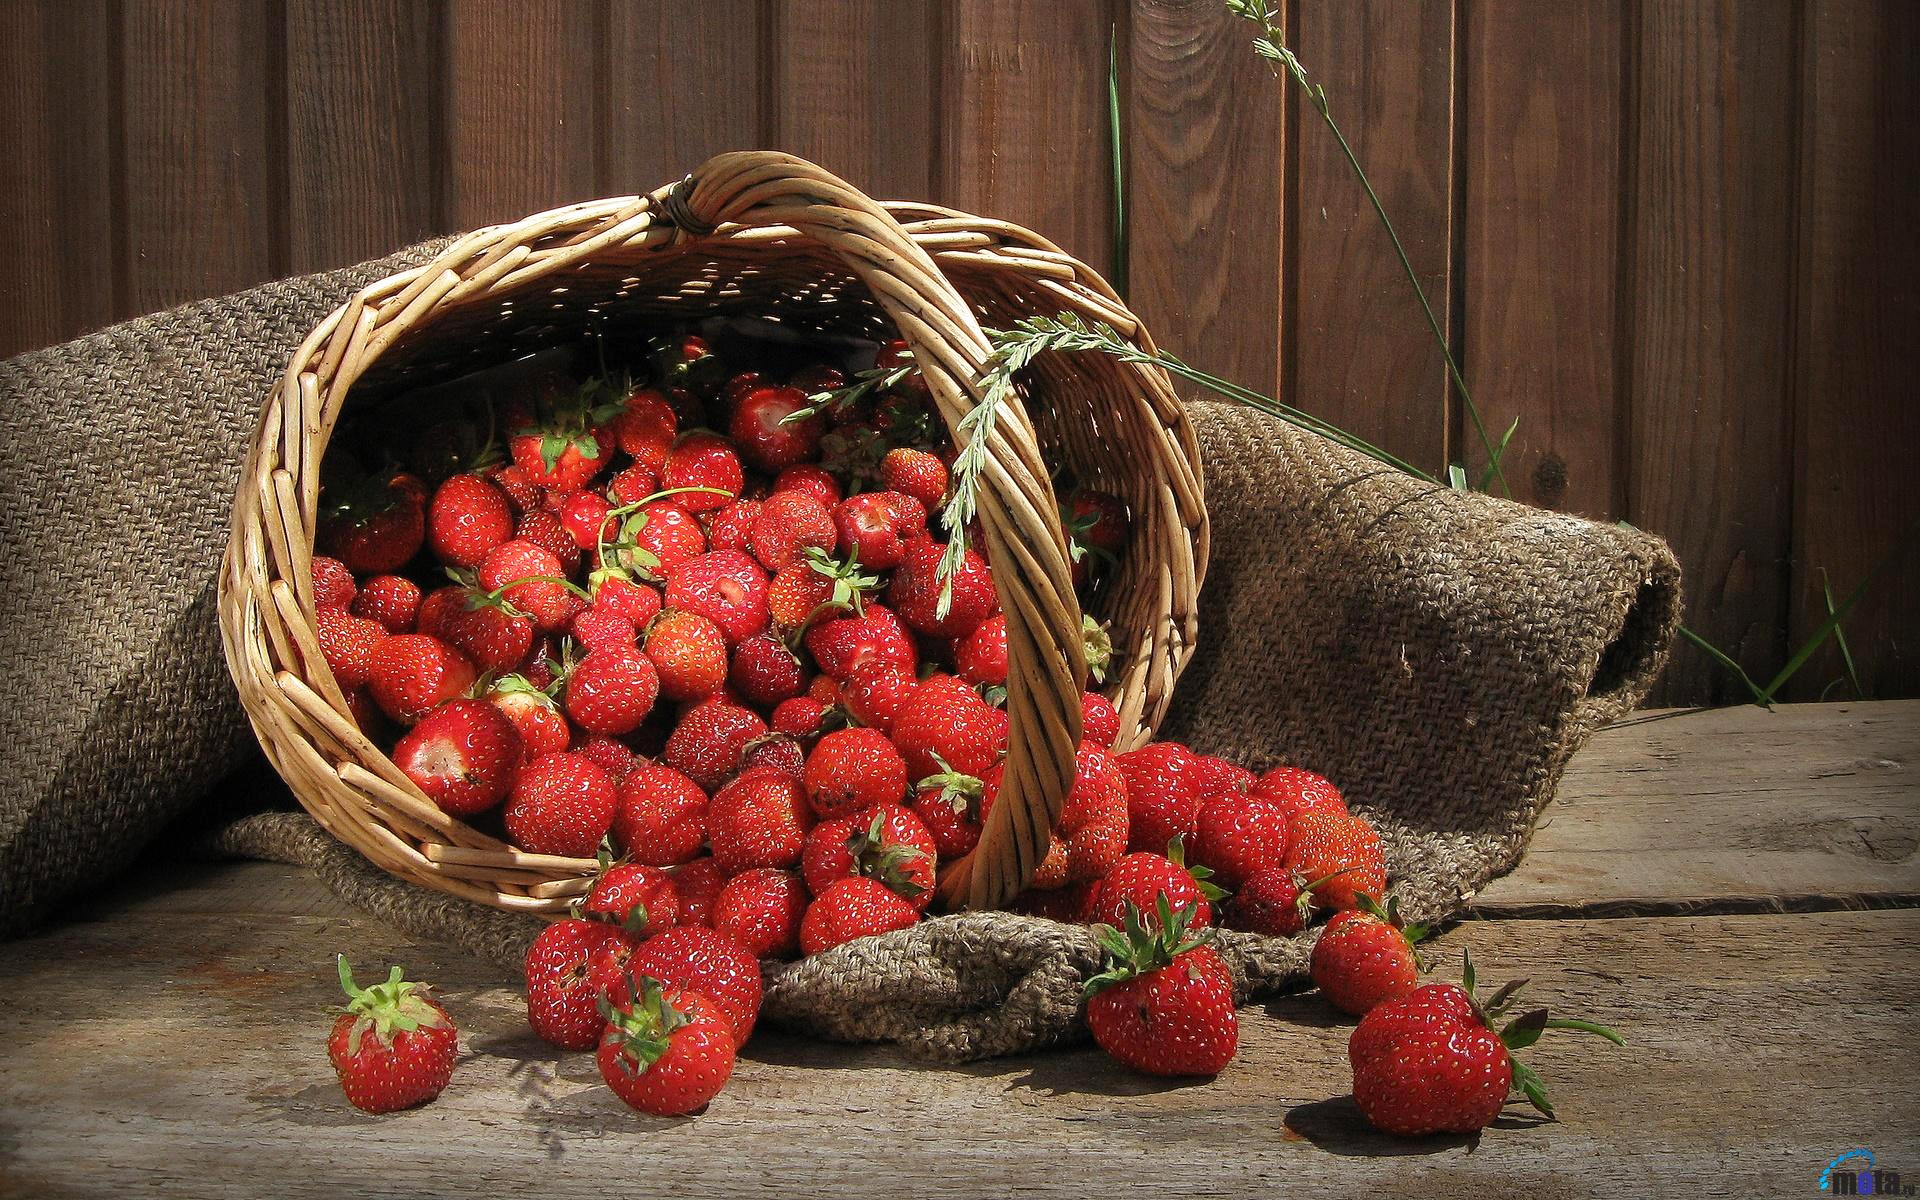 Strawberry Fruits2413019771 - Strawberry Fruits - Strawberry, Fruits, Access